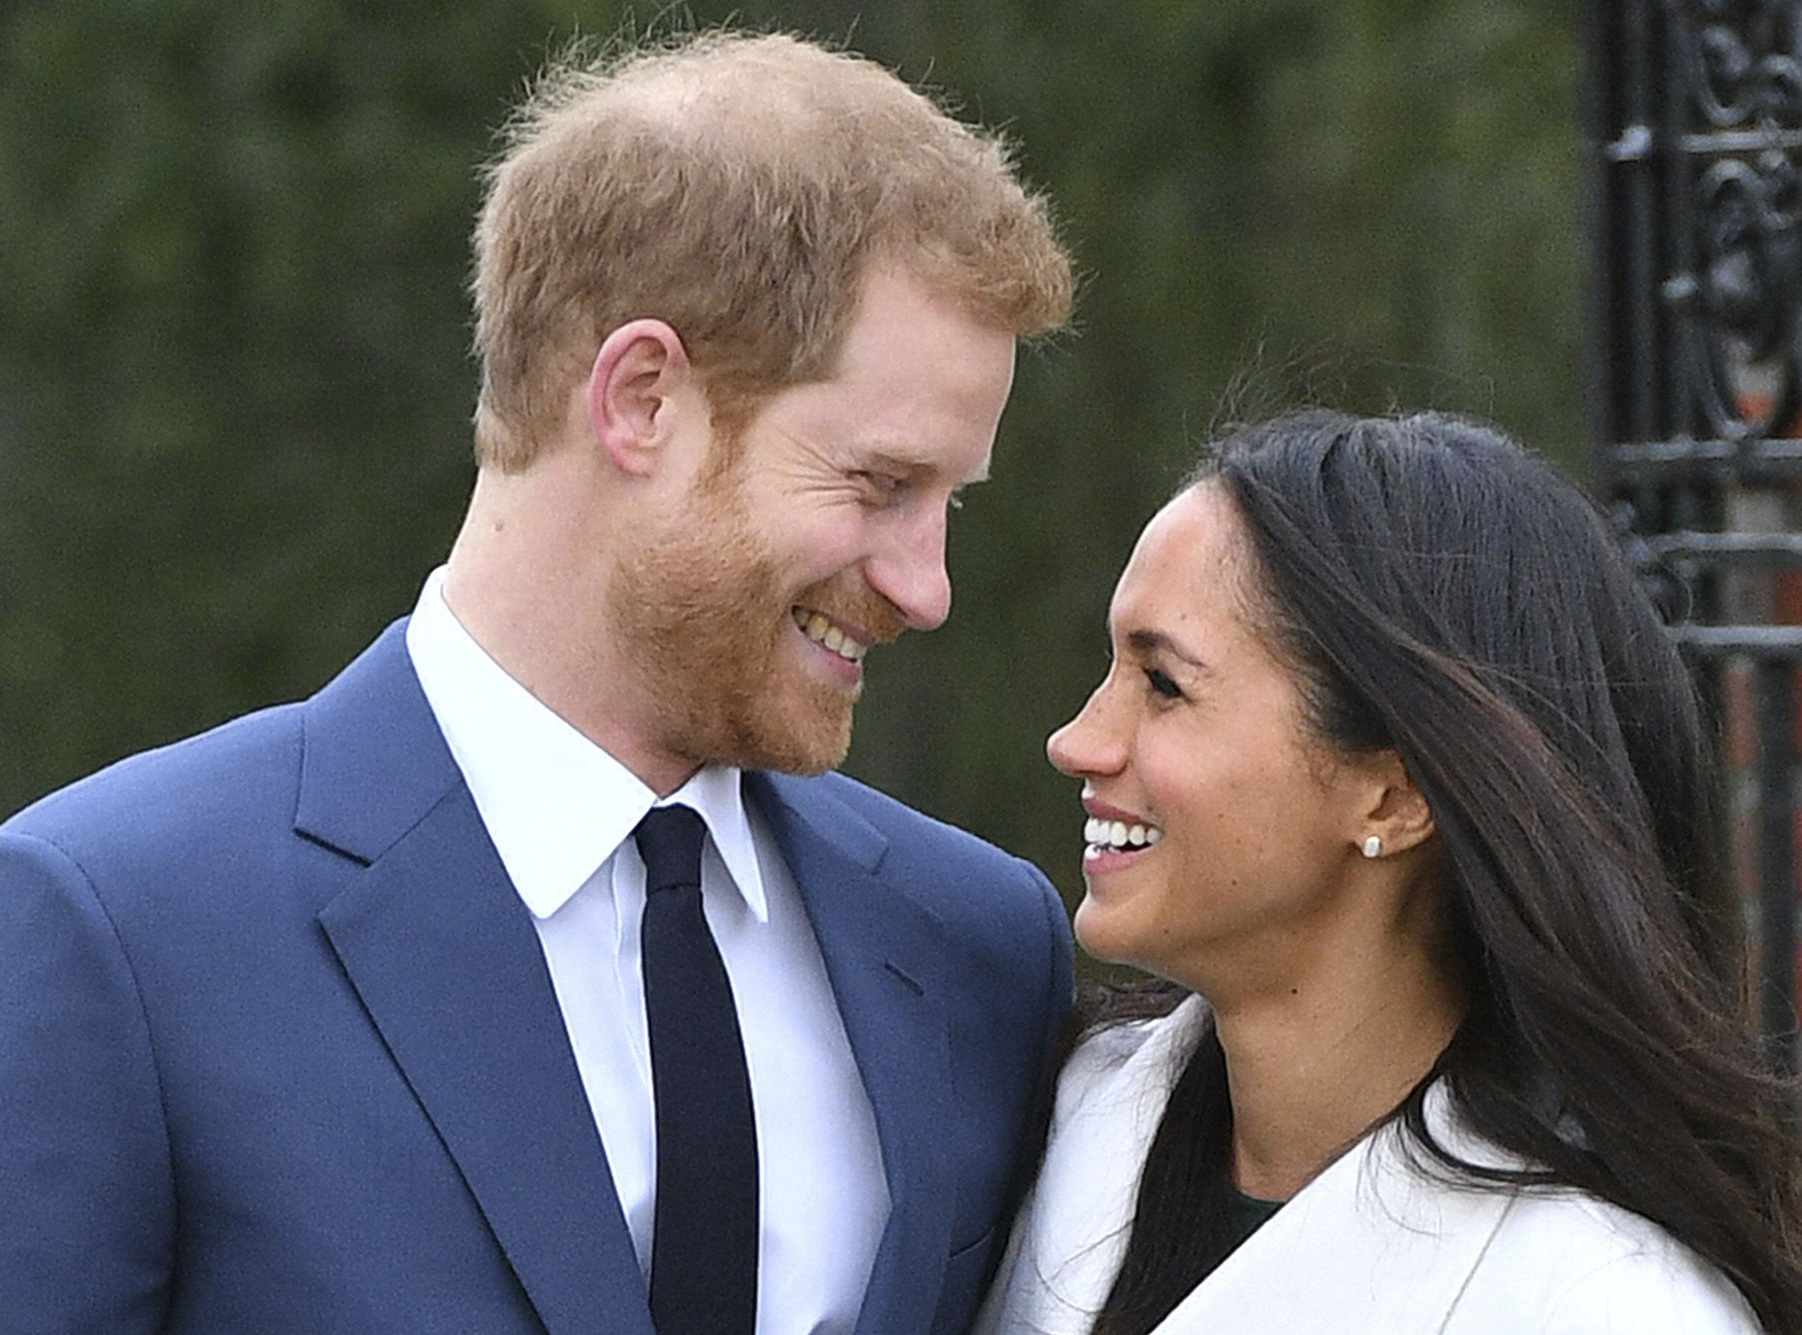 Britain´s Prince Harry and Meghan Markle smile as they pose for the media in the grounds of Kensington Palace in LondonMonday.